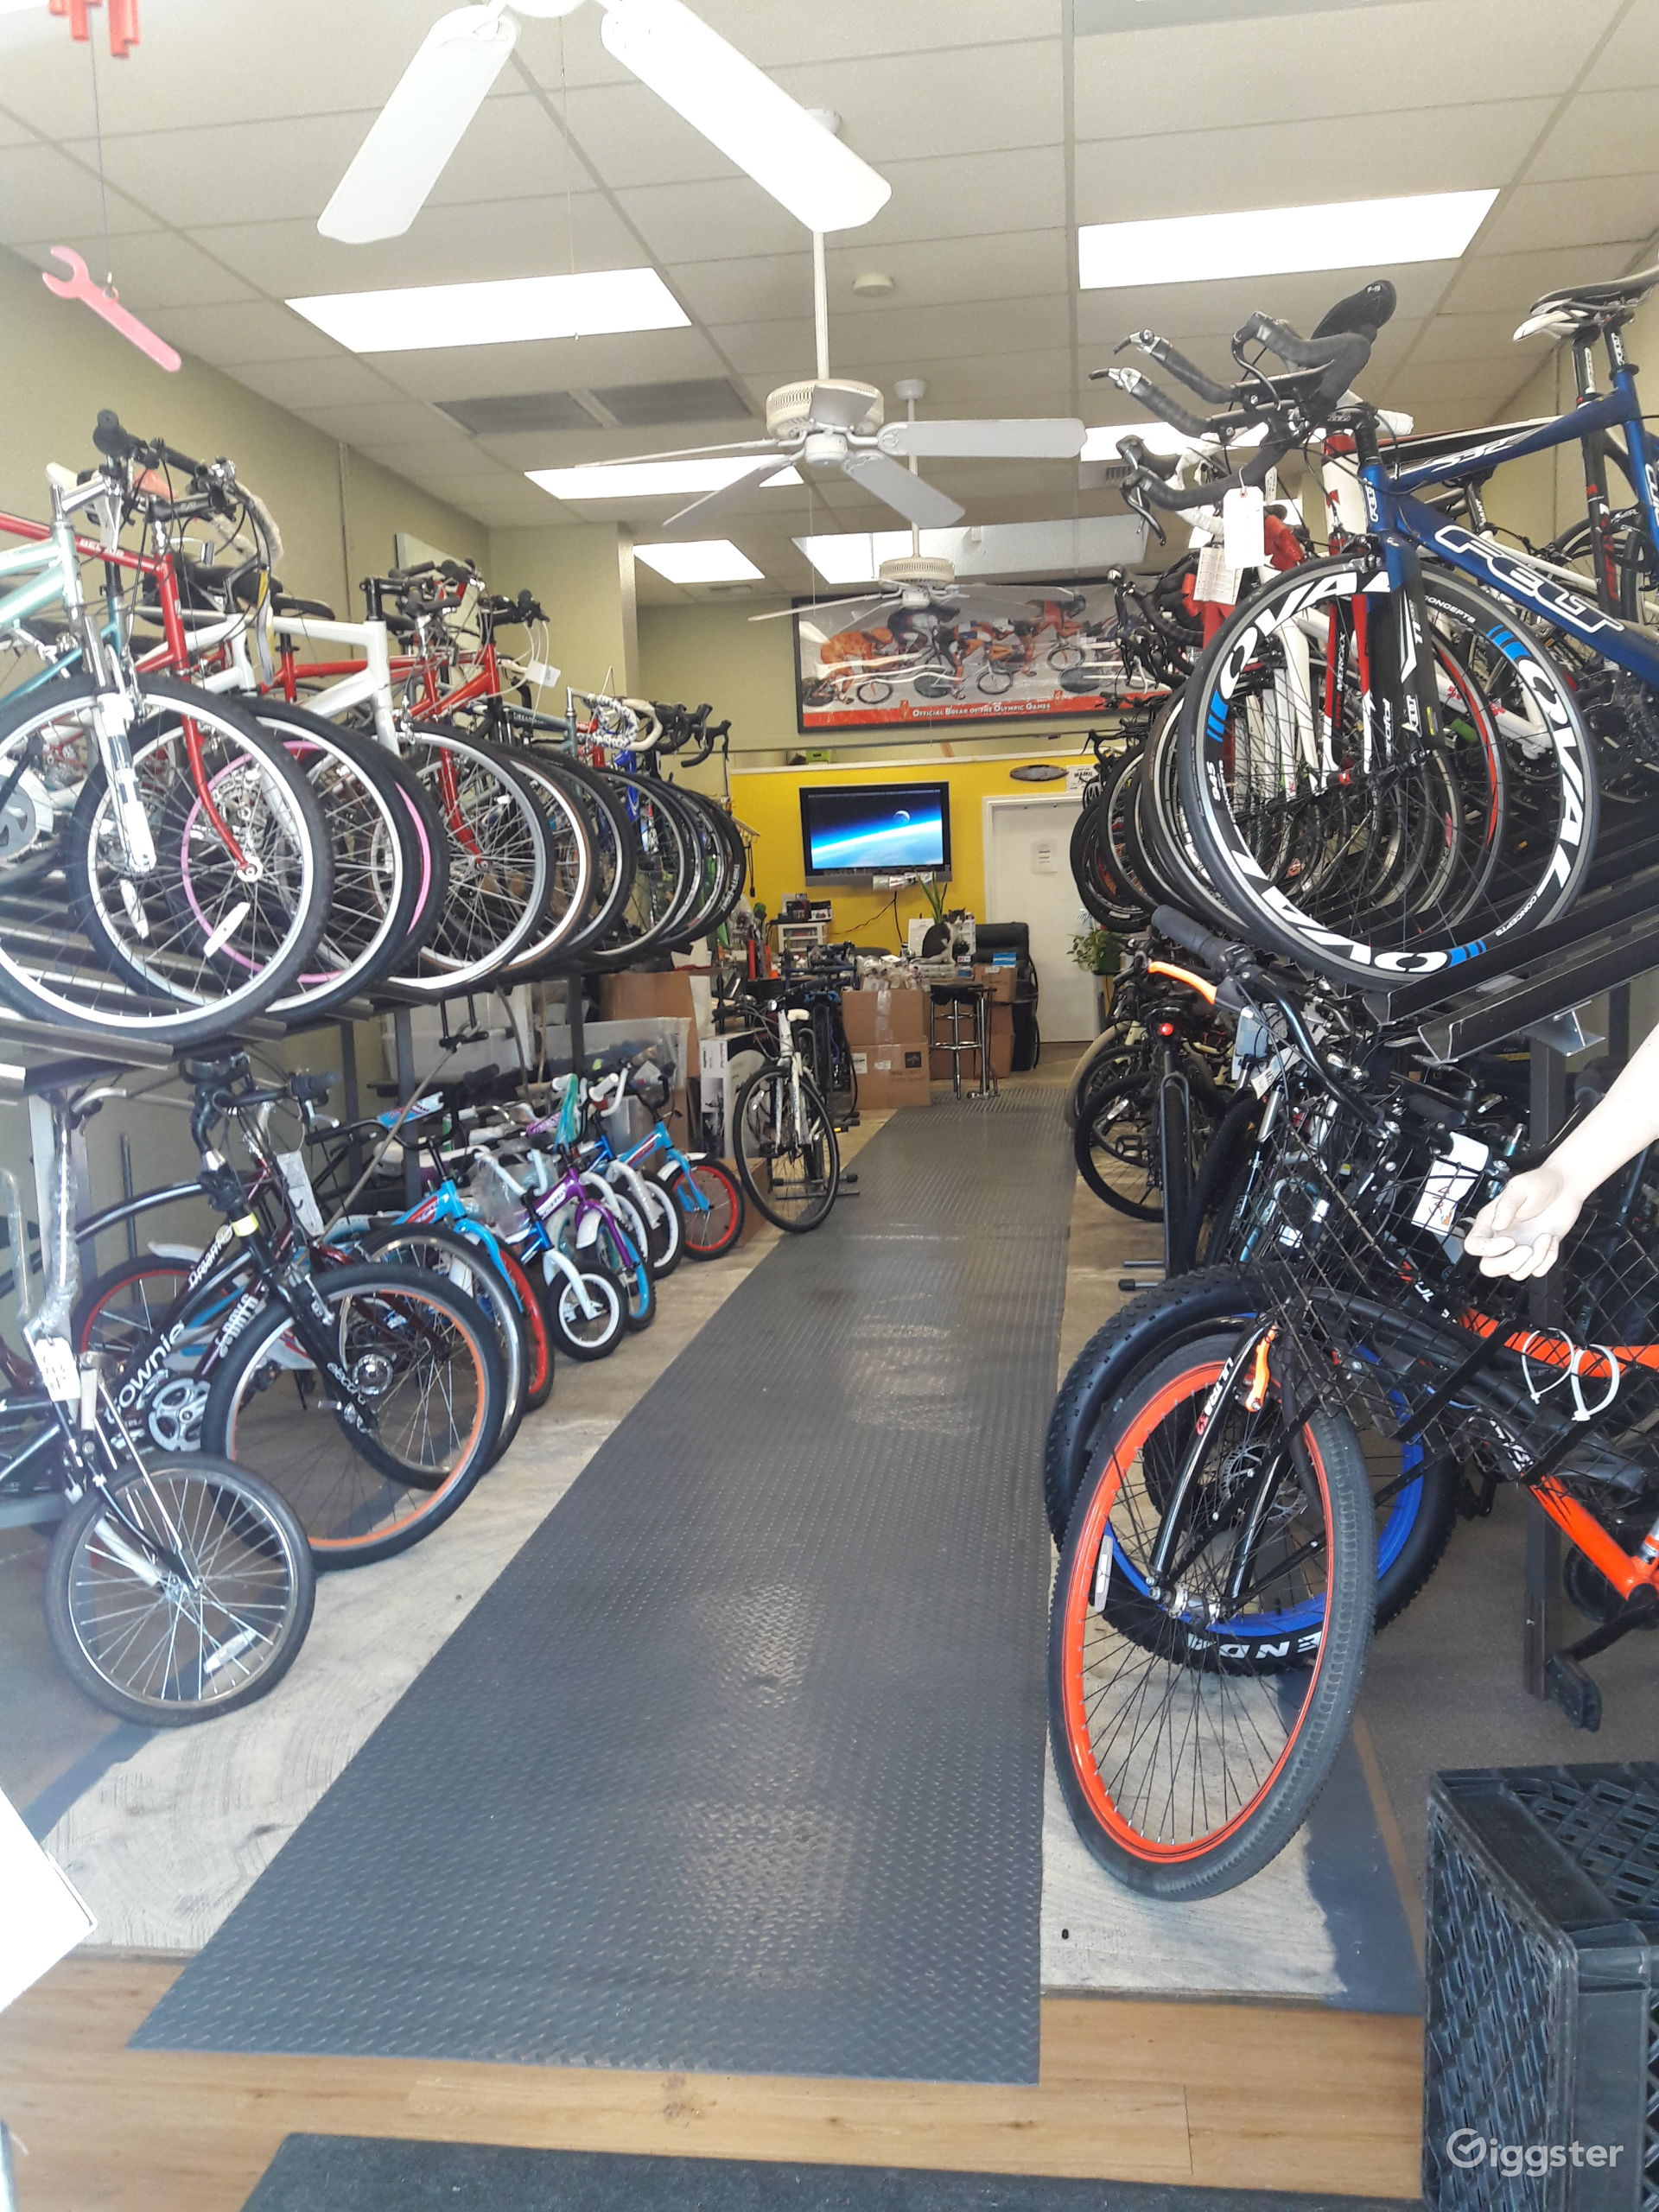 This is the Bike Shop view from the Front Door which opens up to the sidewalk.  11 Foot High ceilings